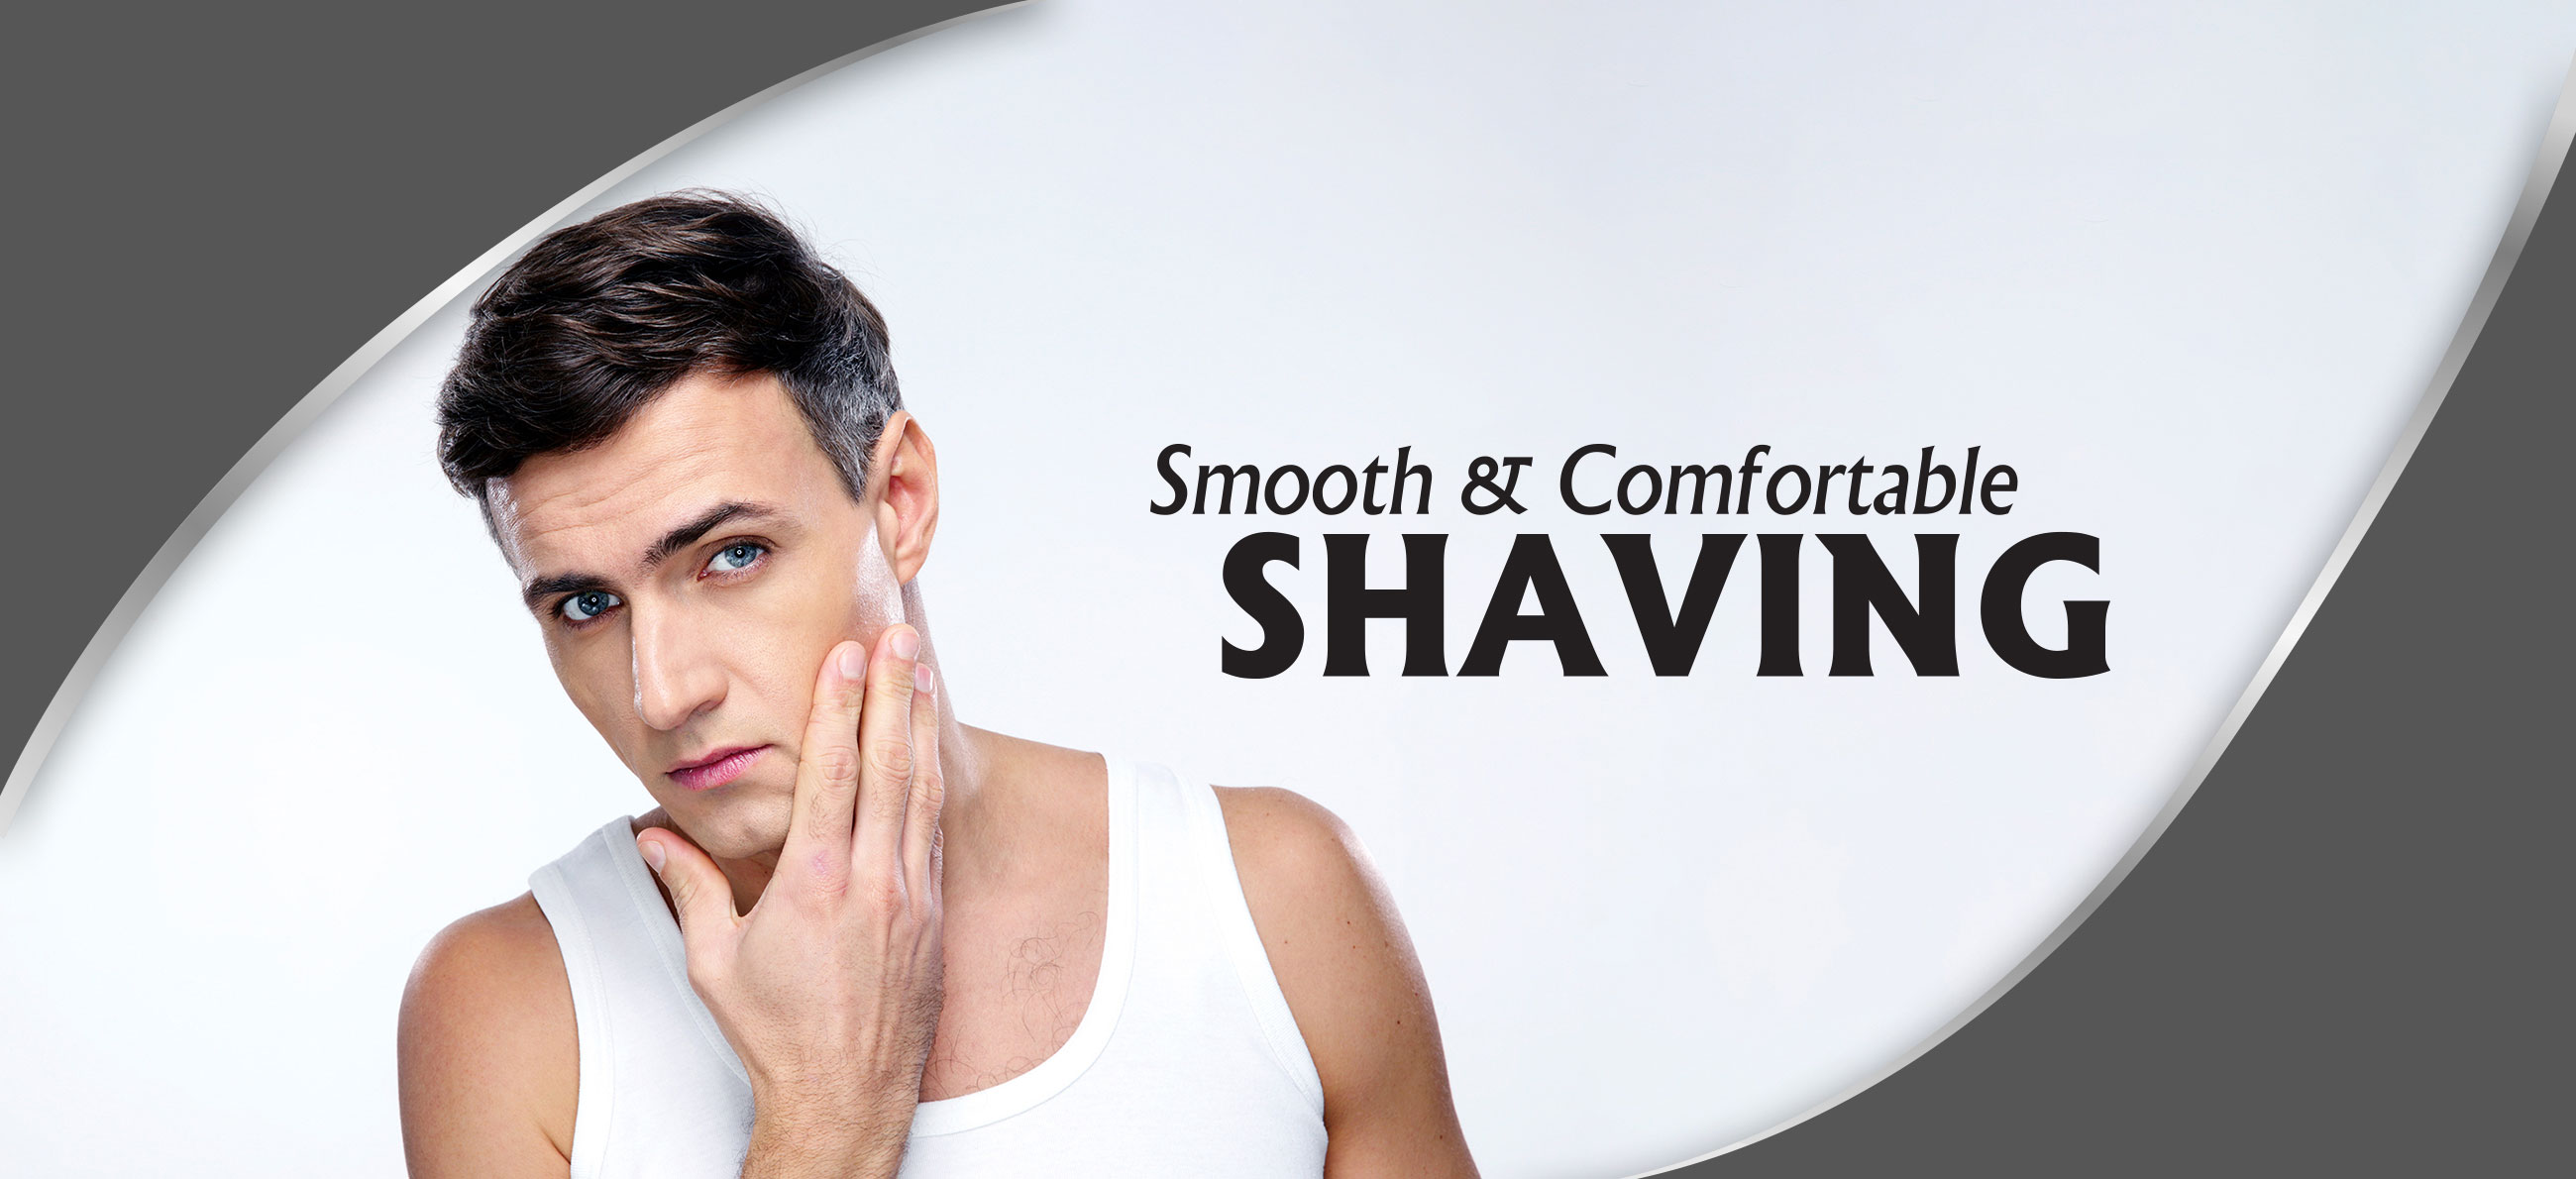 amazing shaving experience personal care blades disposable razors professional salon